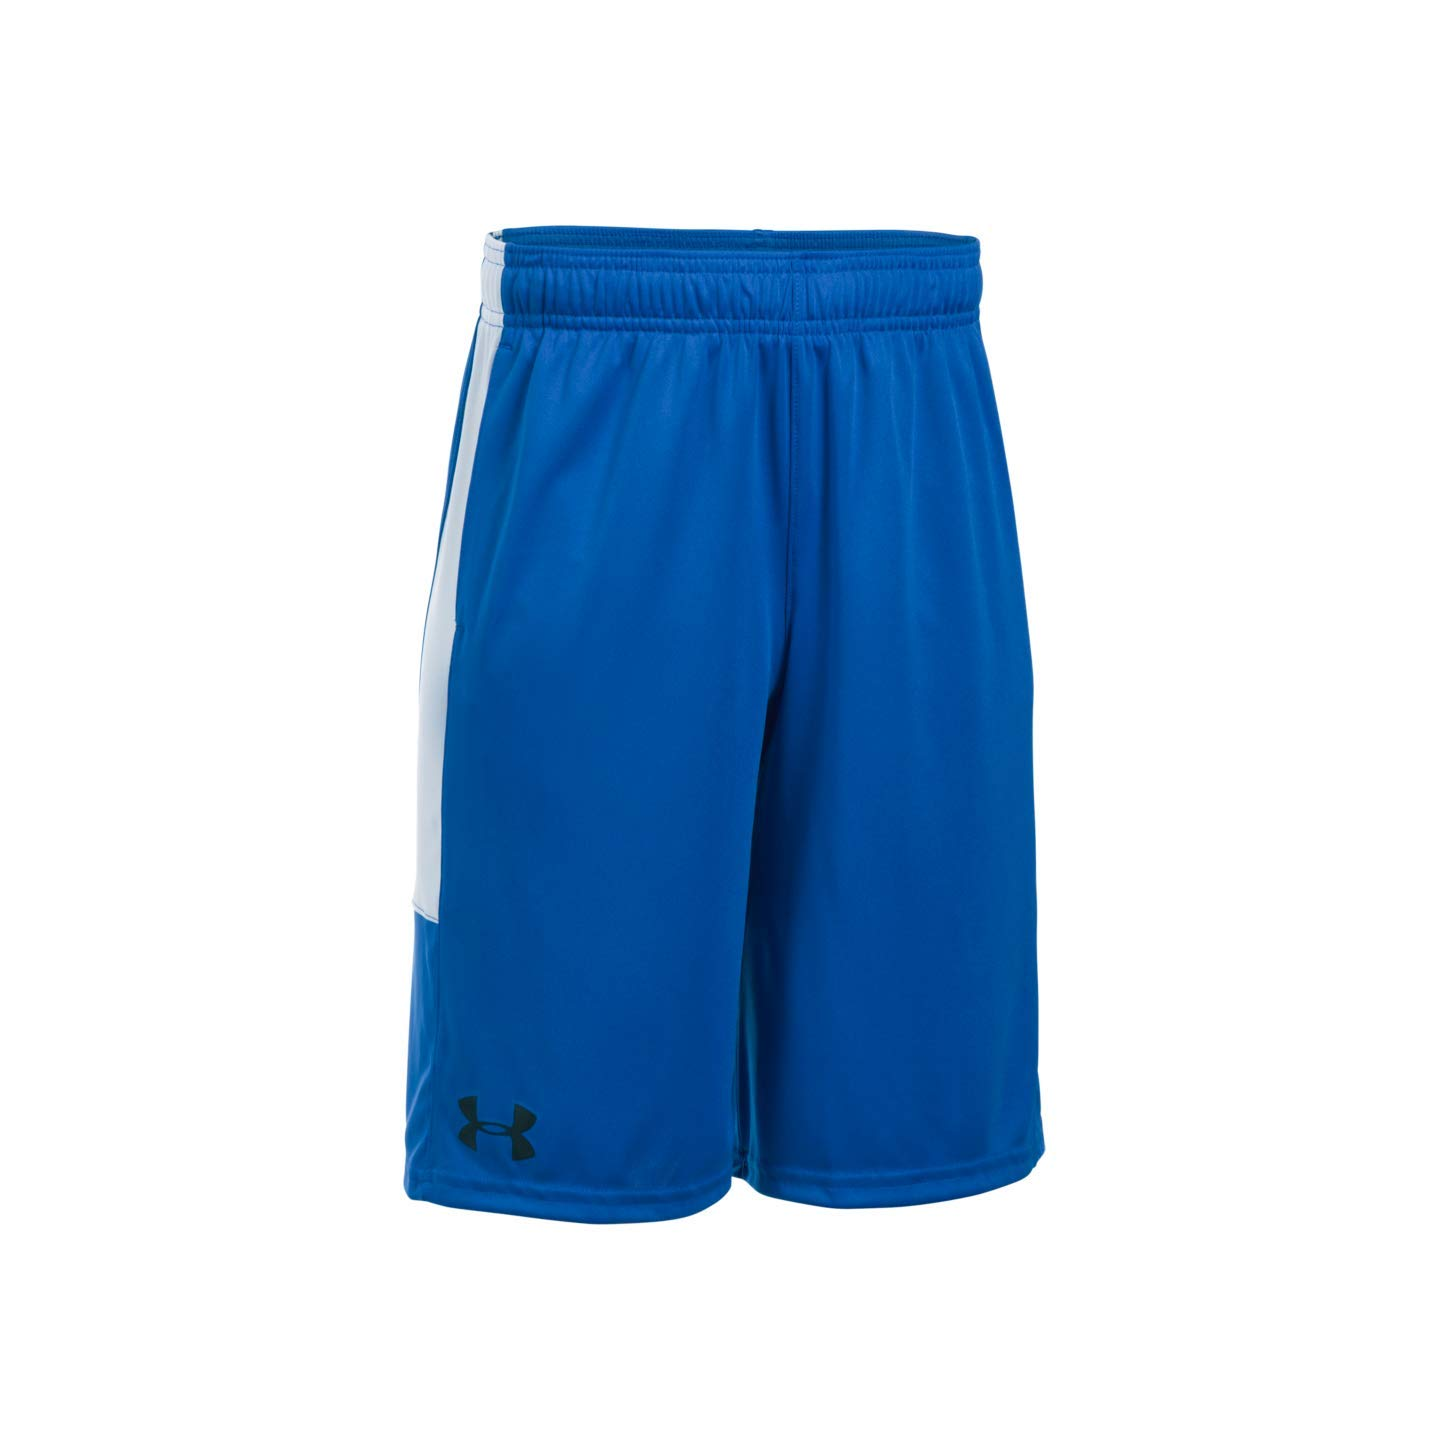 Under Armour Boys Instinct Shorts,Ultra Blue /Black Youth X-Large by Under Armour